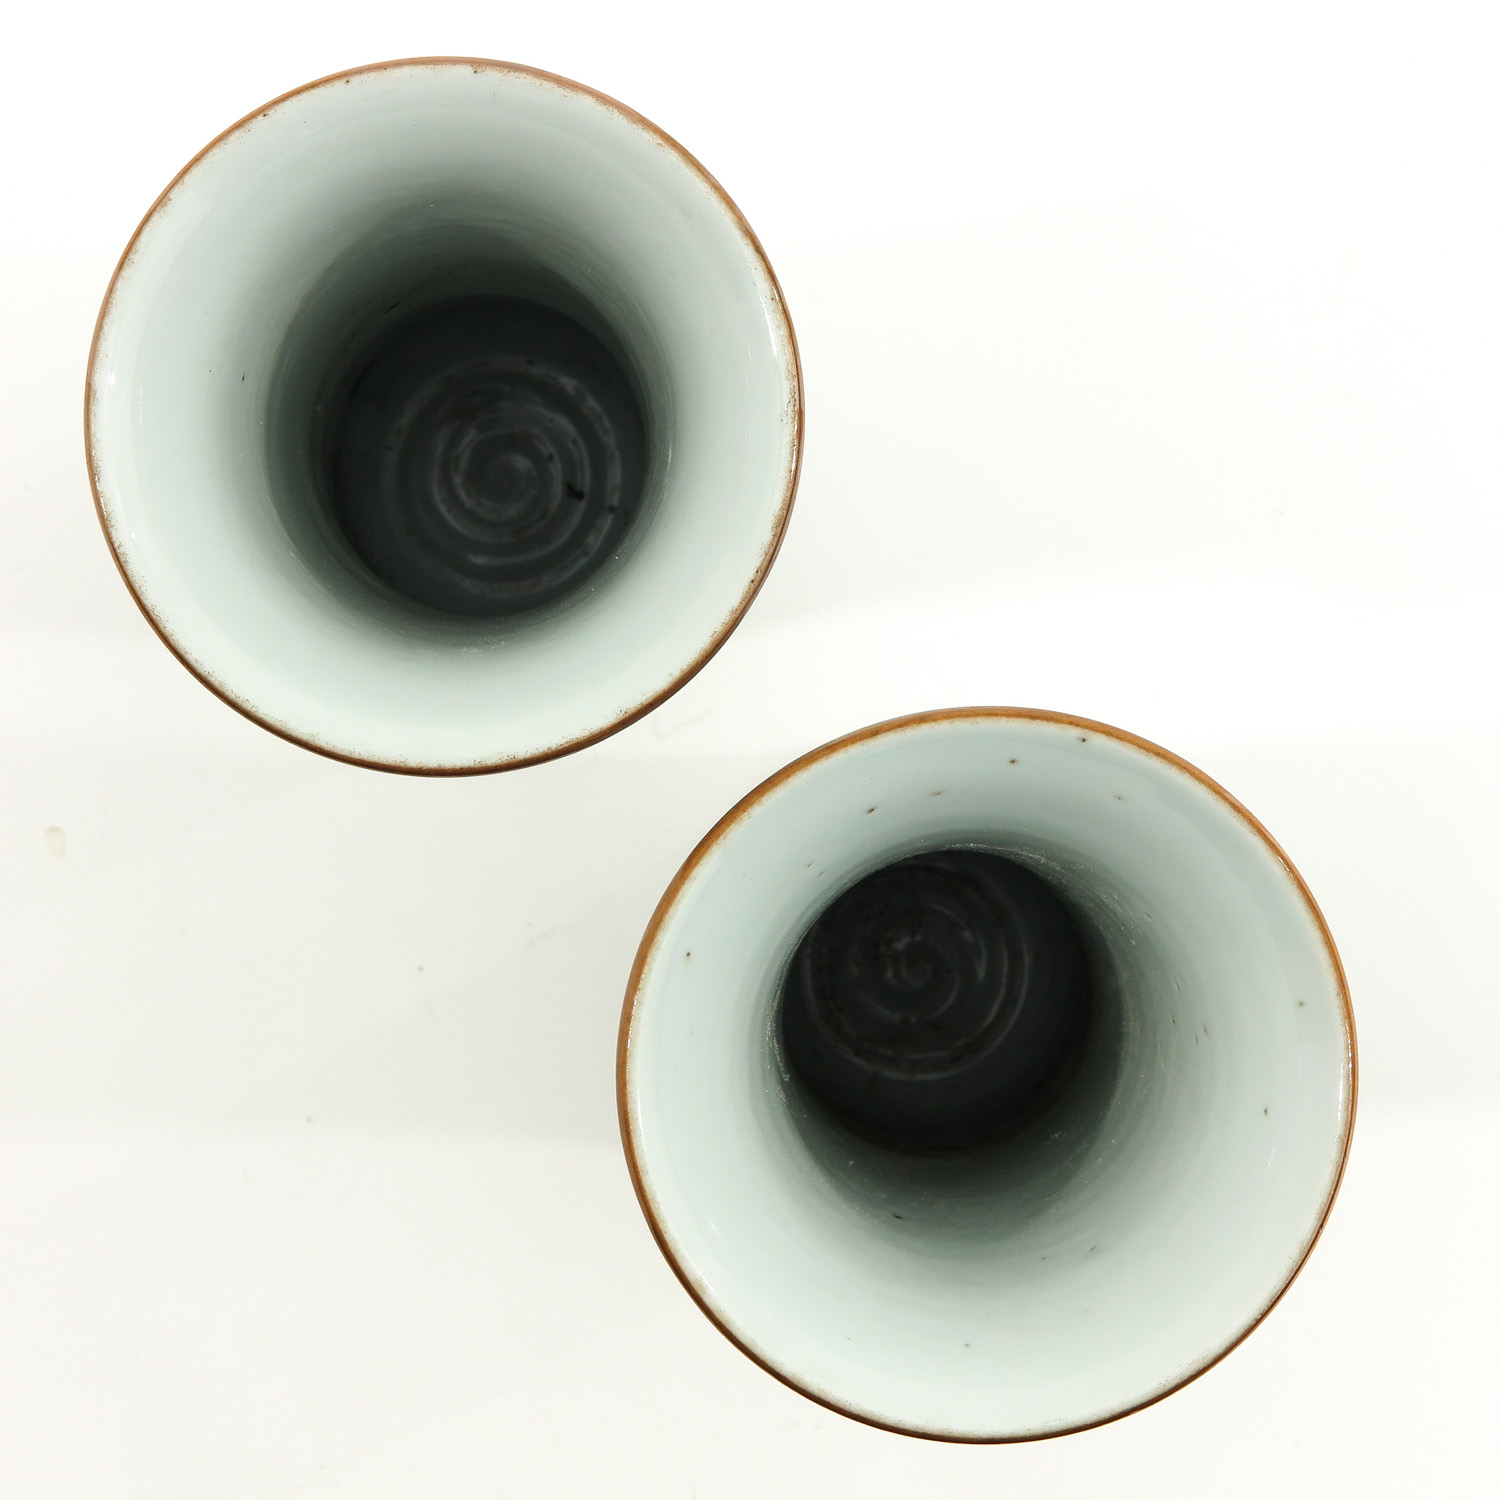 A Pair of Famile Verte Vases - Image 5 of 9